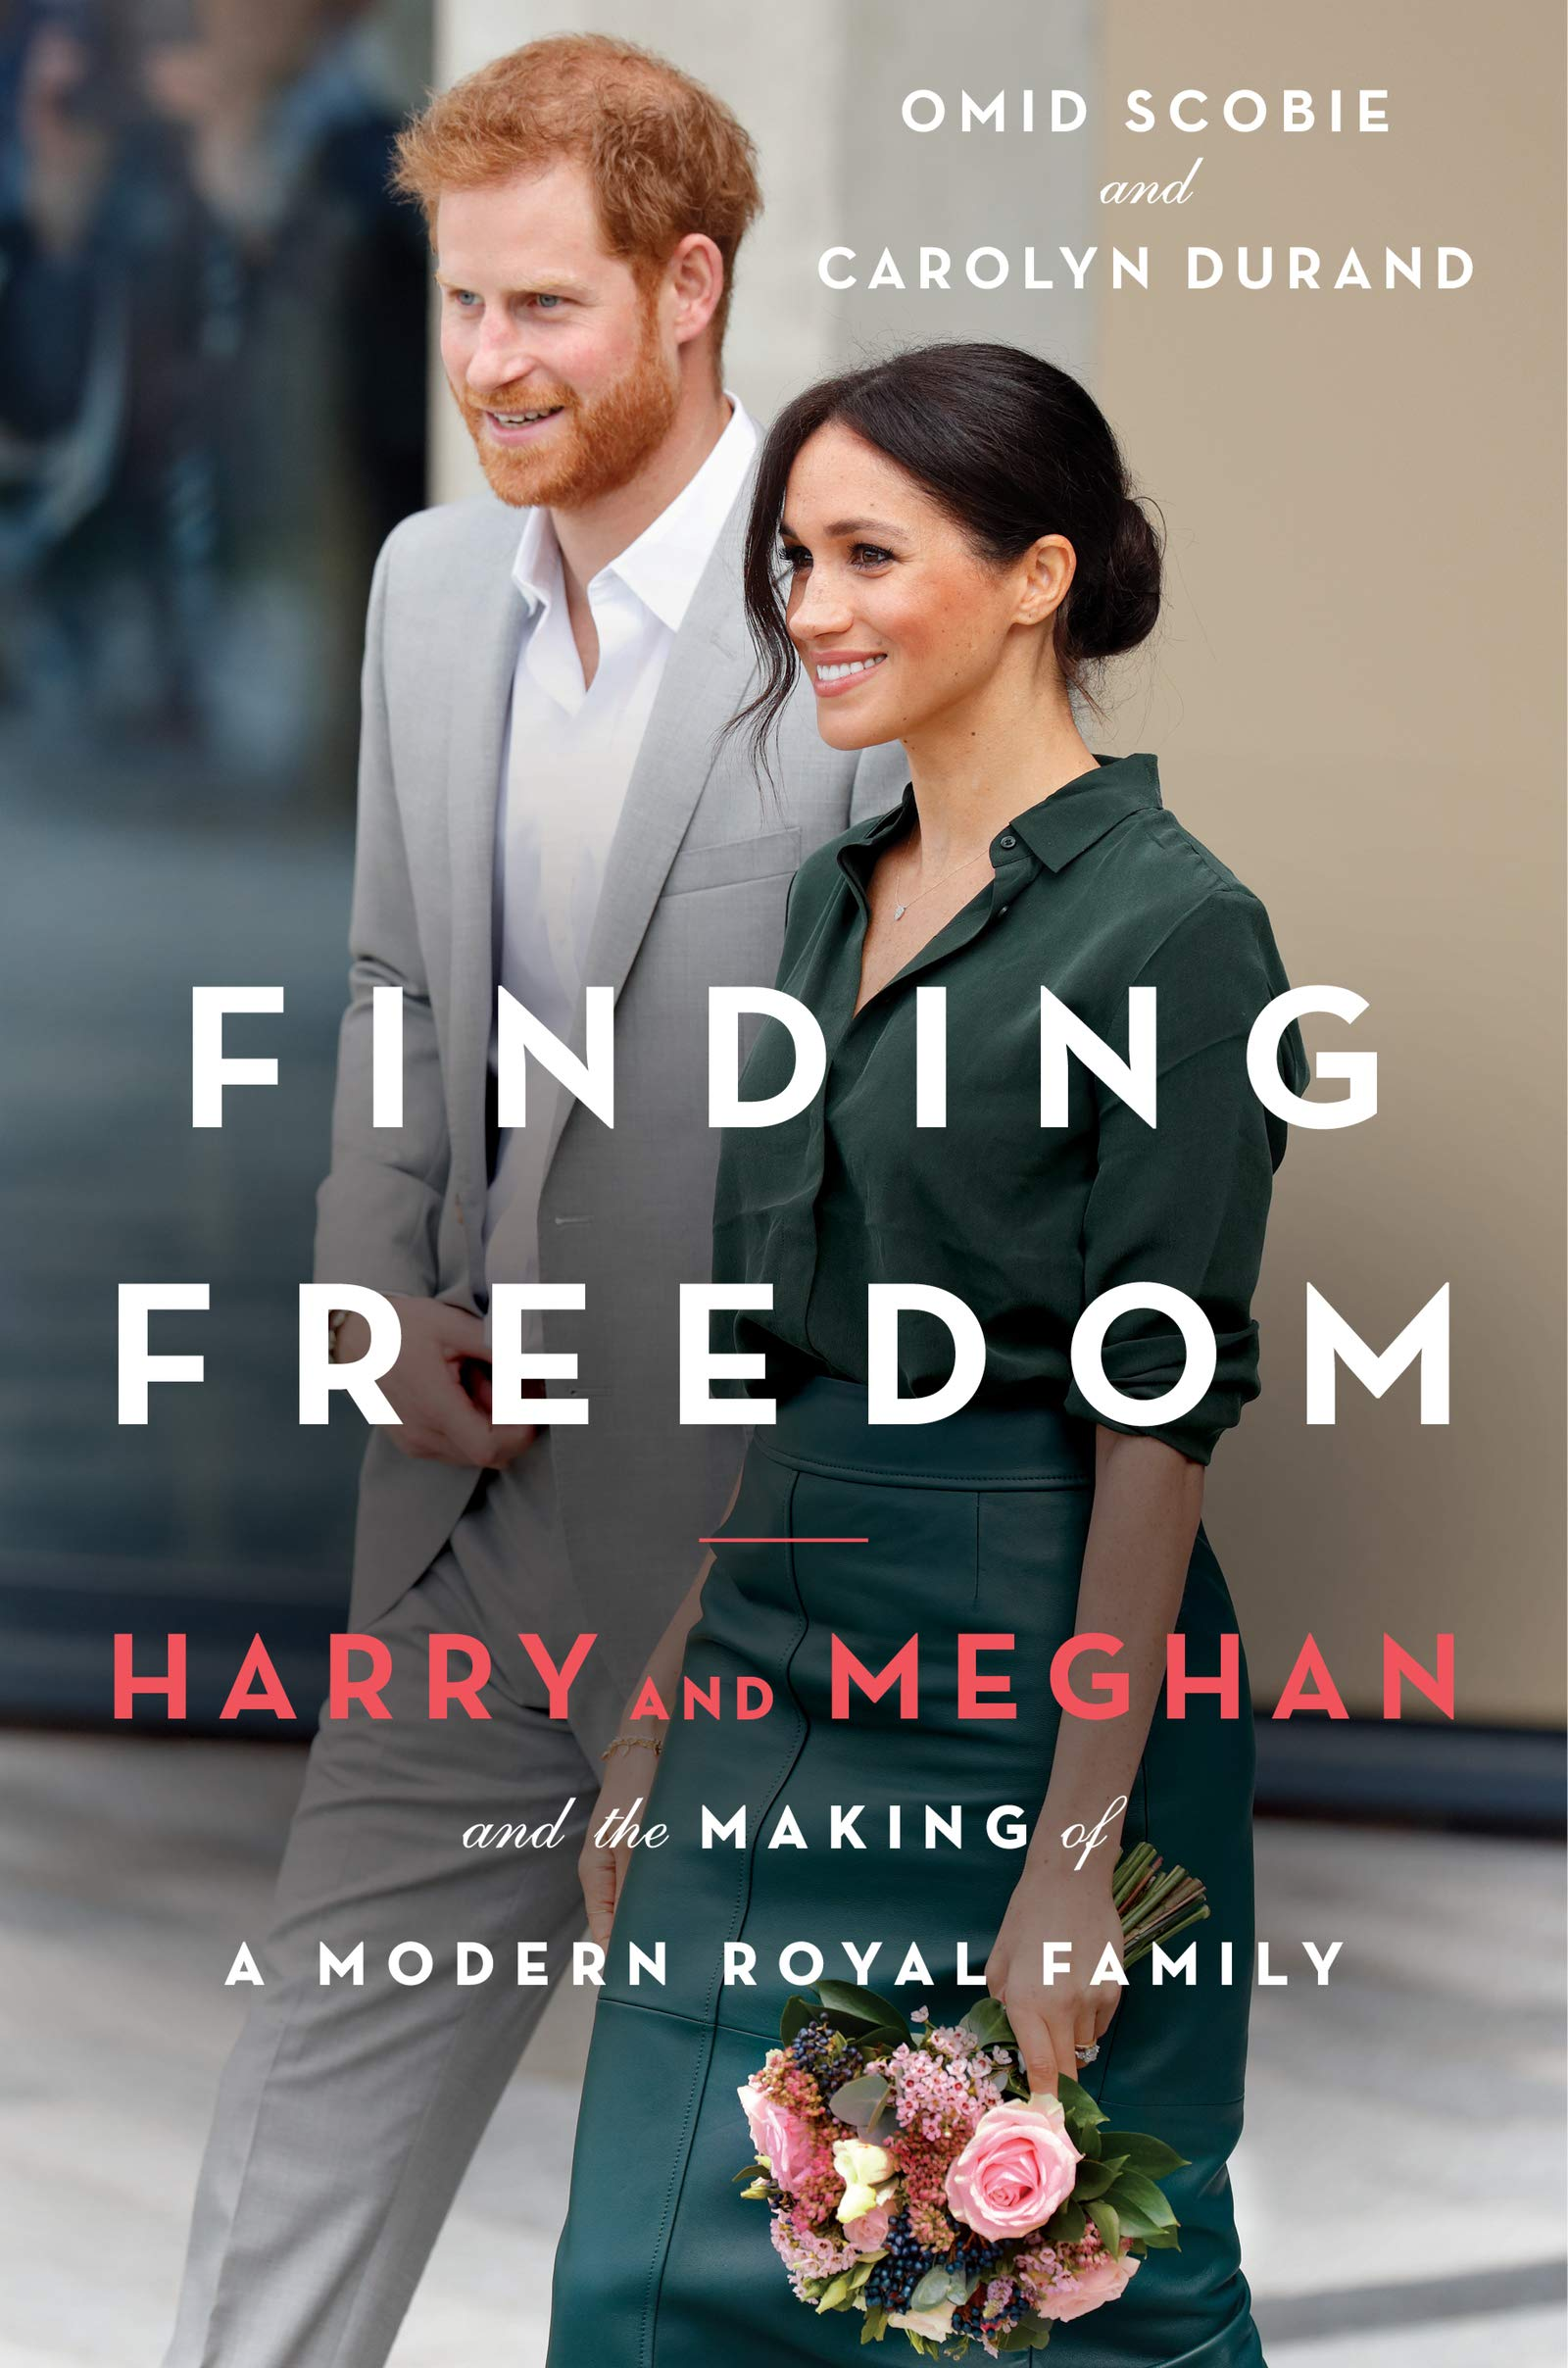 Cover image of Finding Freedom by Omid Scobie & Carolyn Durand